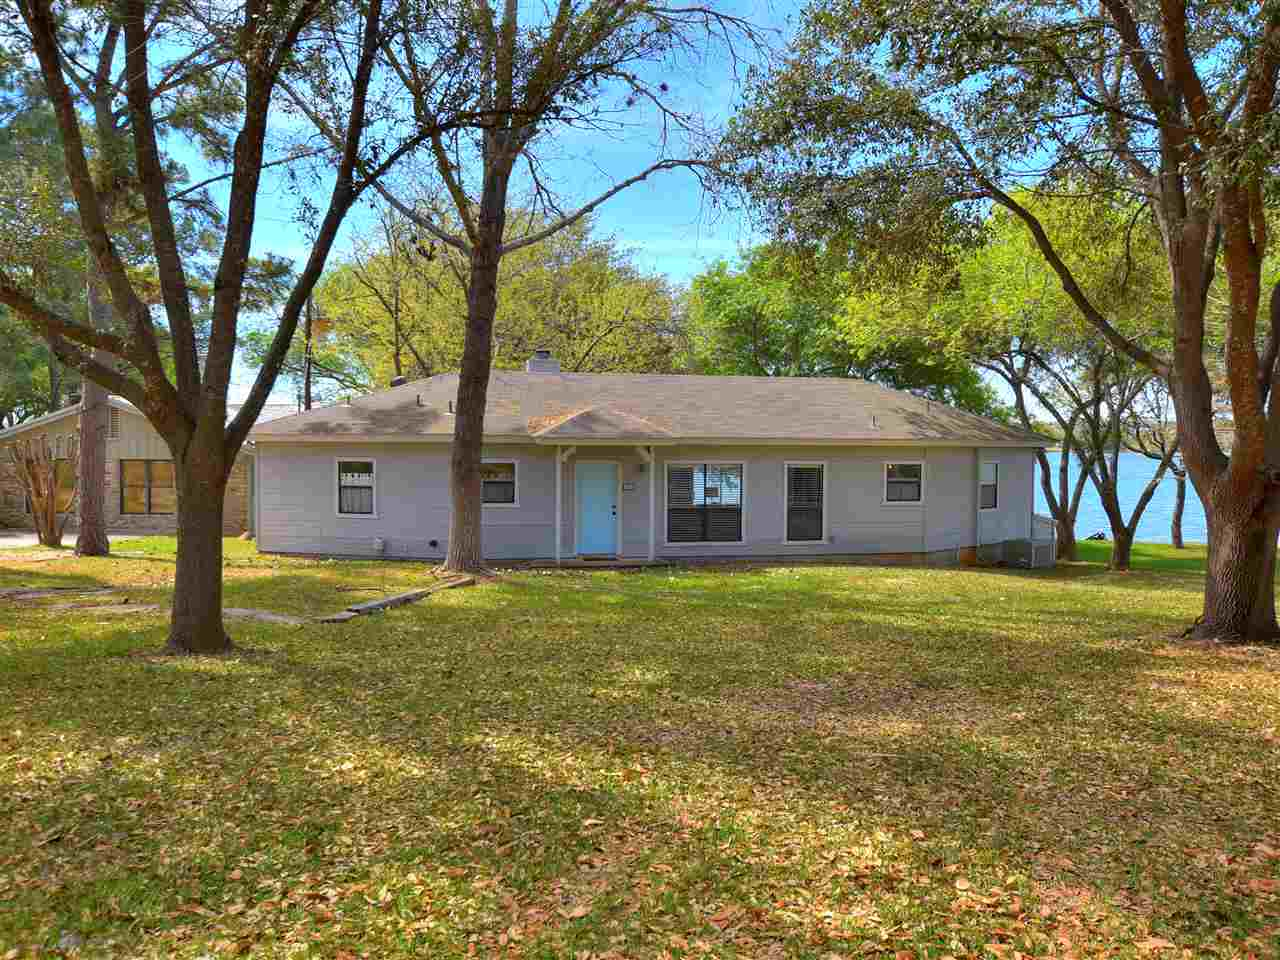 286 E Lakeshore Horseshoe Bay Real Estate Home Listings - RE/MAX Horseshoe Bay Resort Sales, Co. Lake LBJ Real Estate